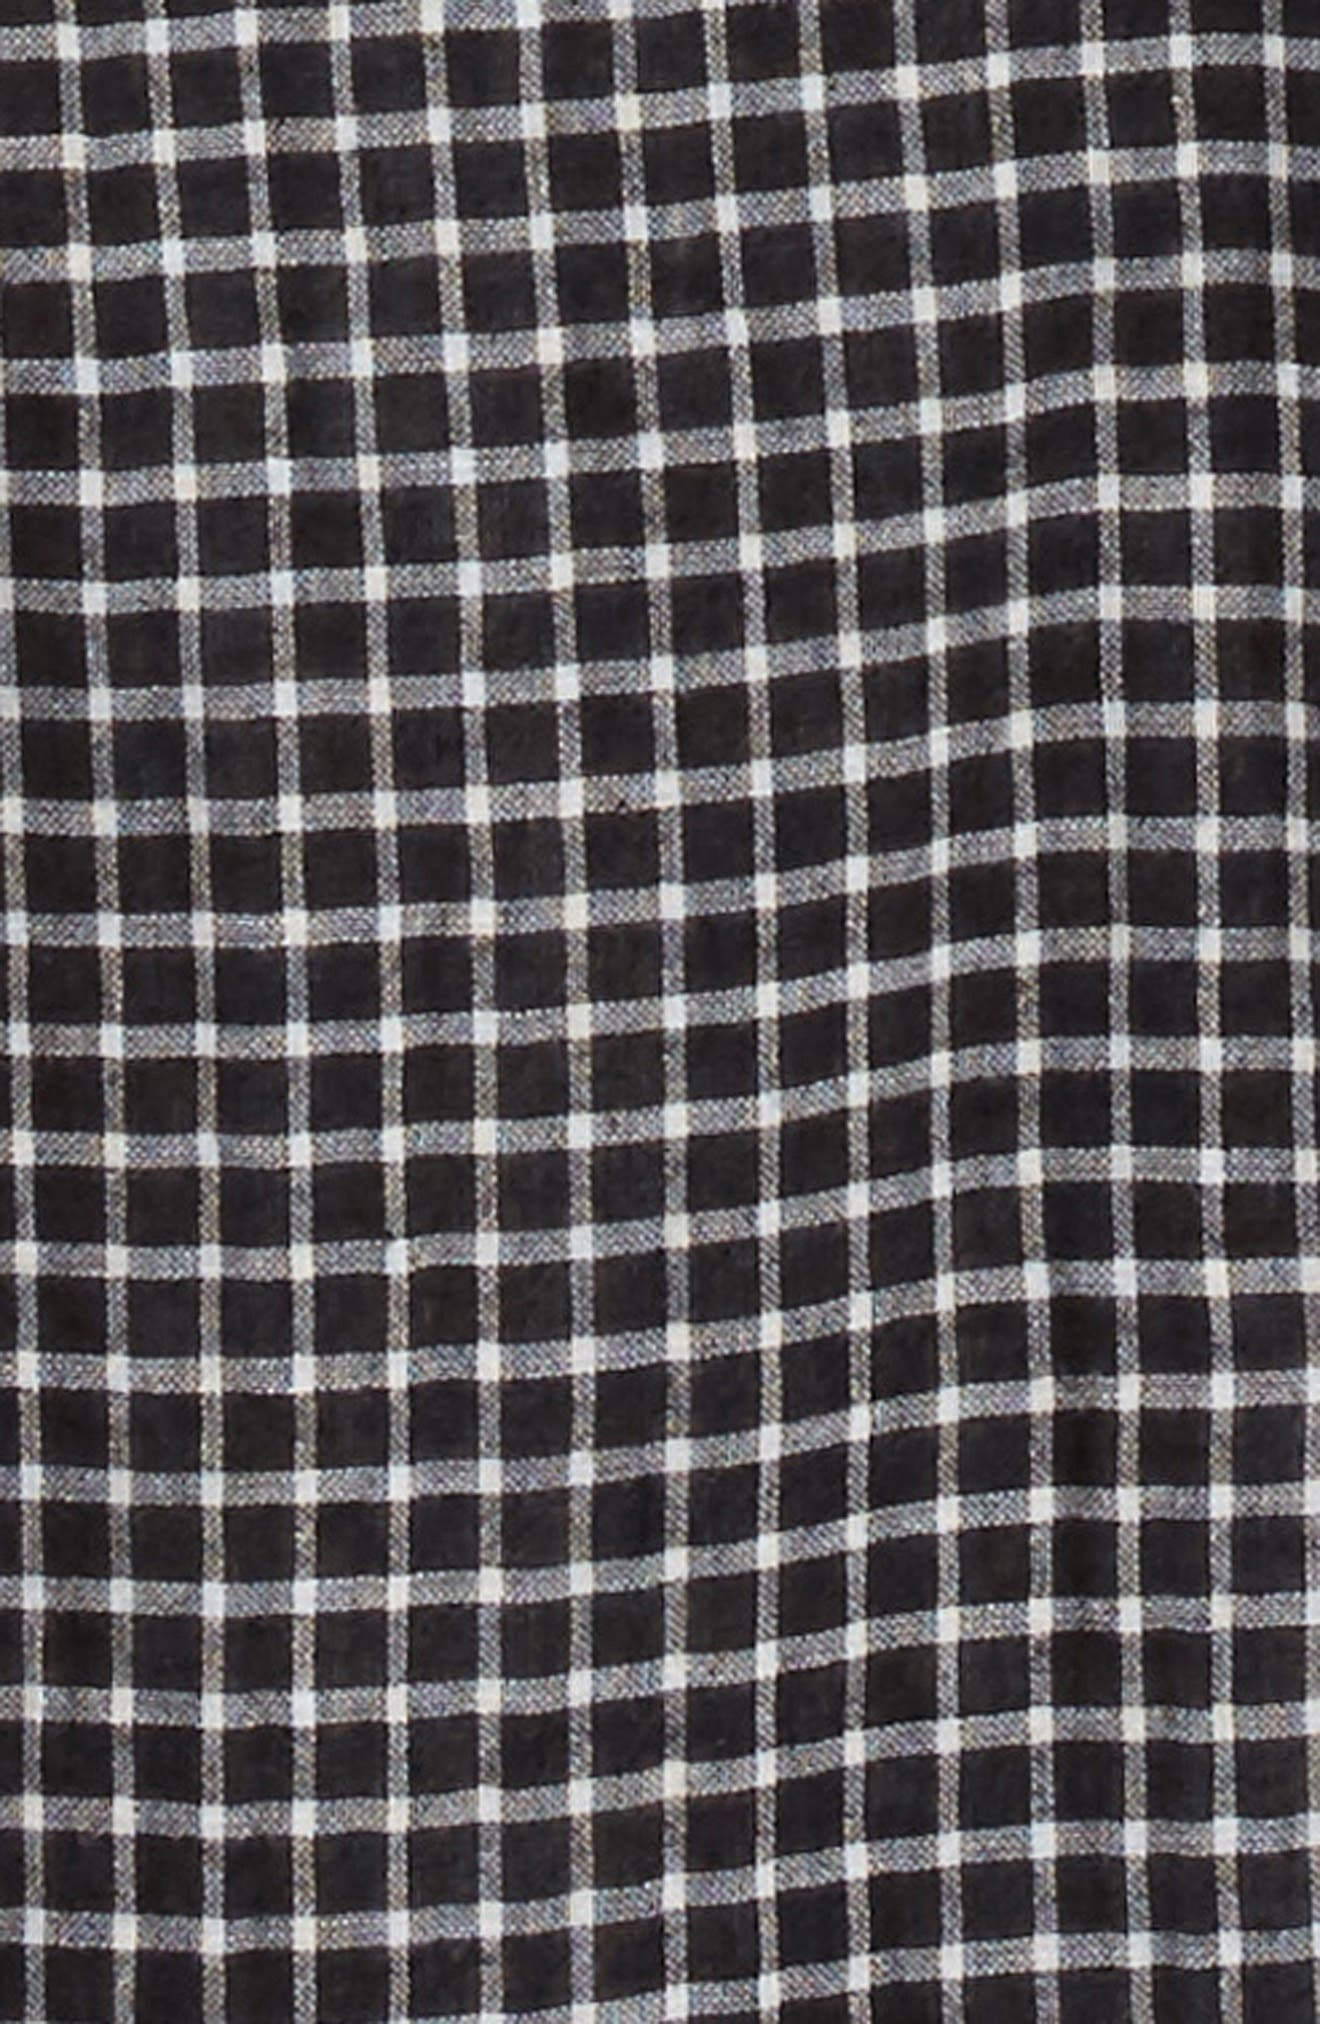 Check Pattern Woven Shirt,                             Alternate thumbnail 2, color,                             Black- Ivory Check